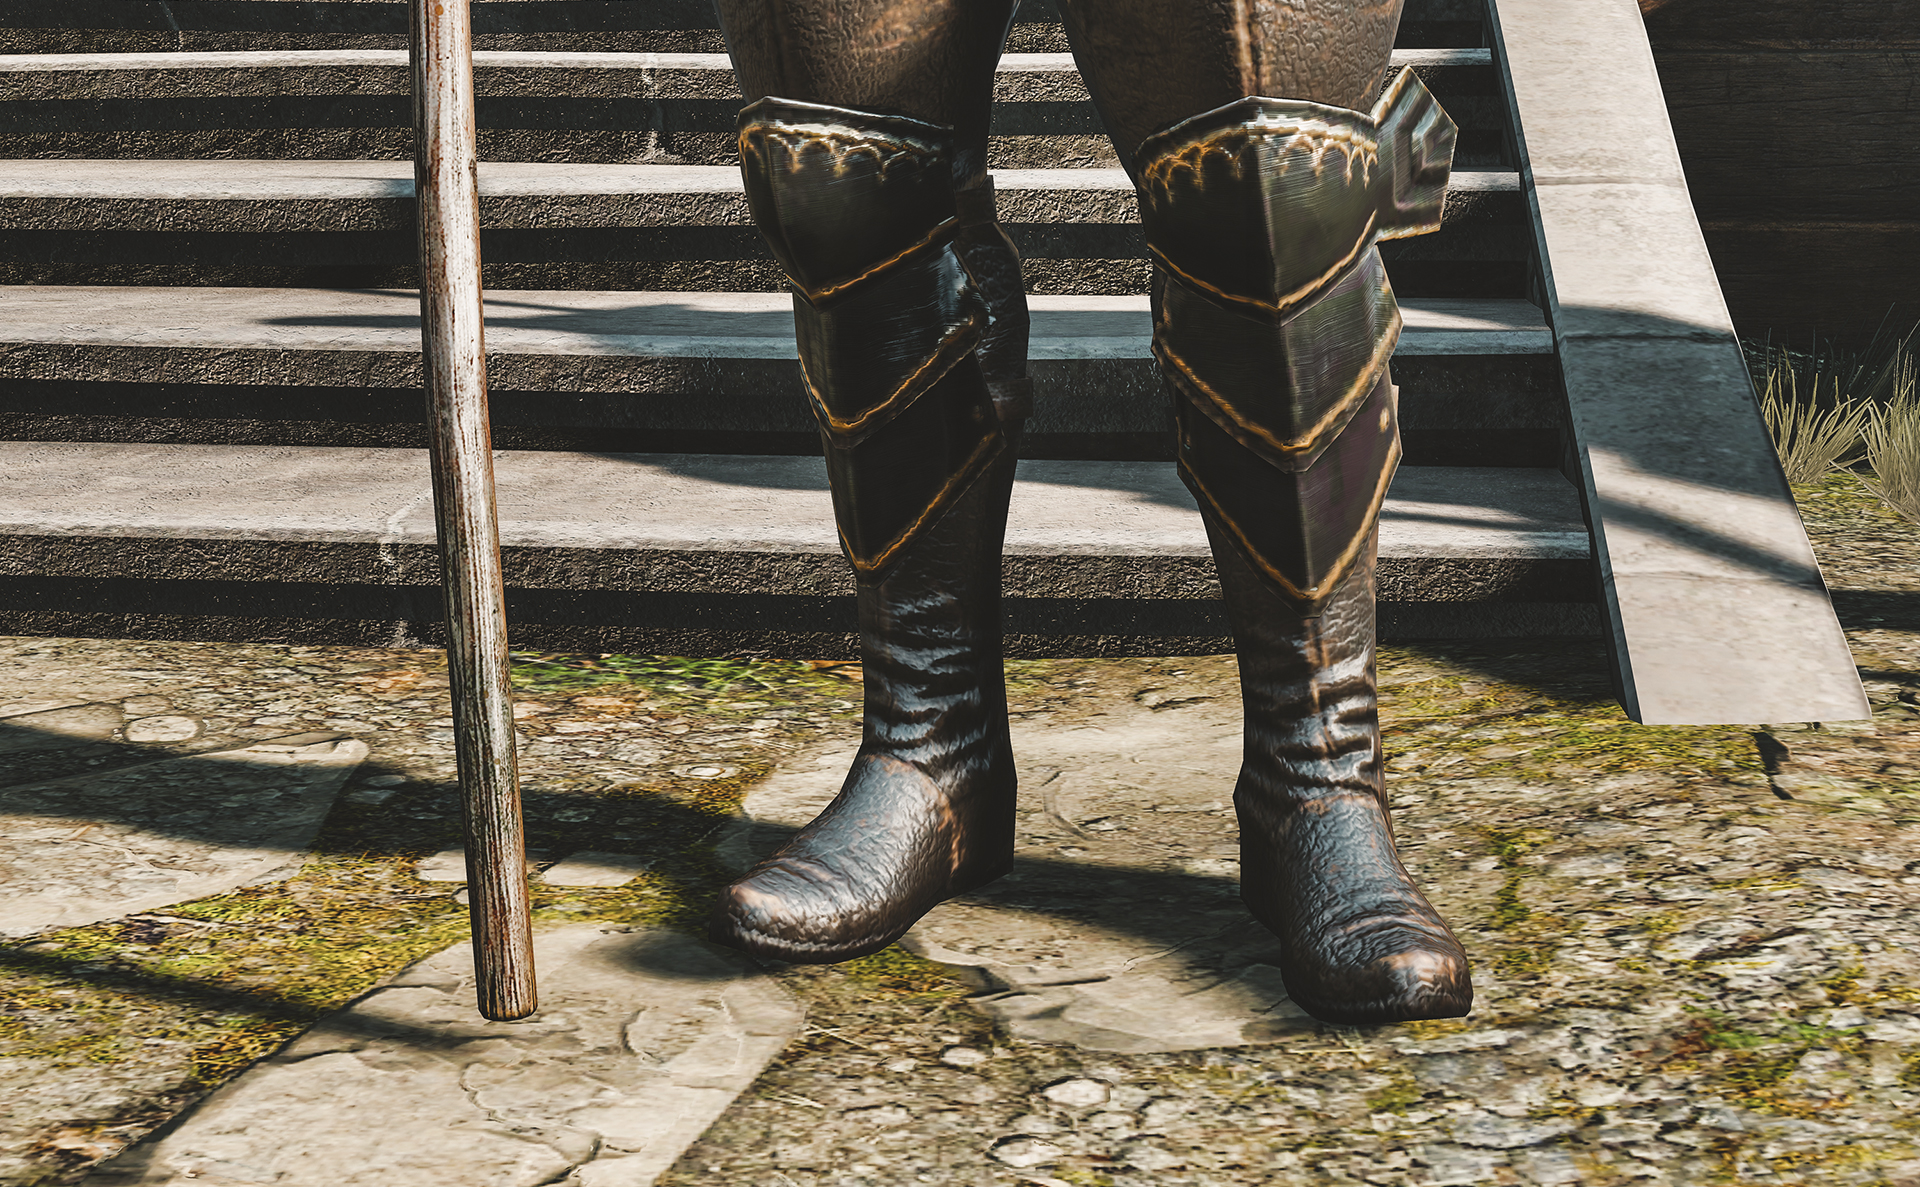 The-Witcher-3-small-2018.07.12---01.59.22.jpg